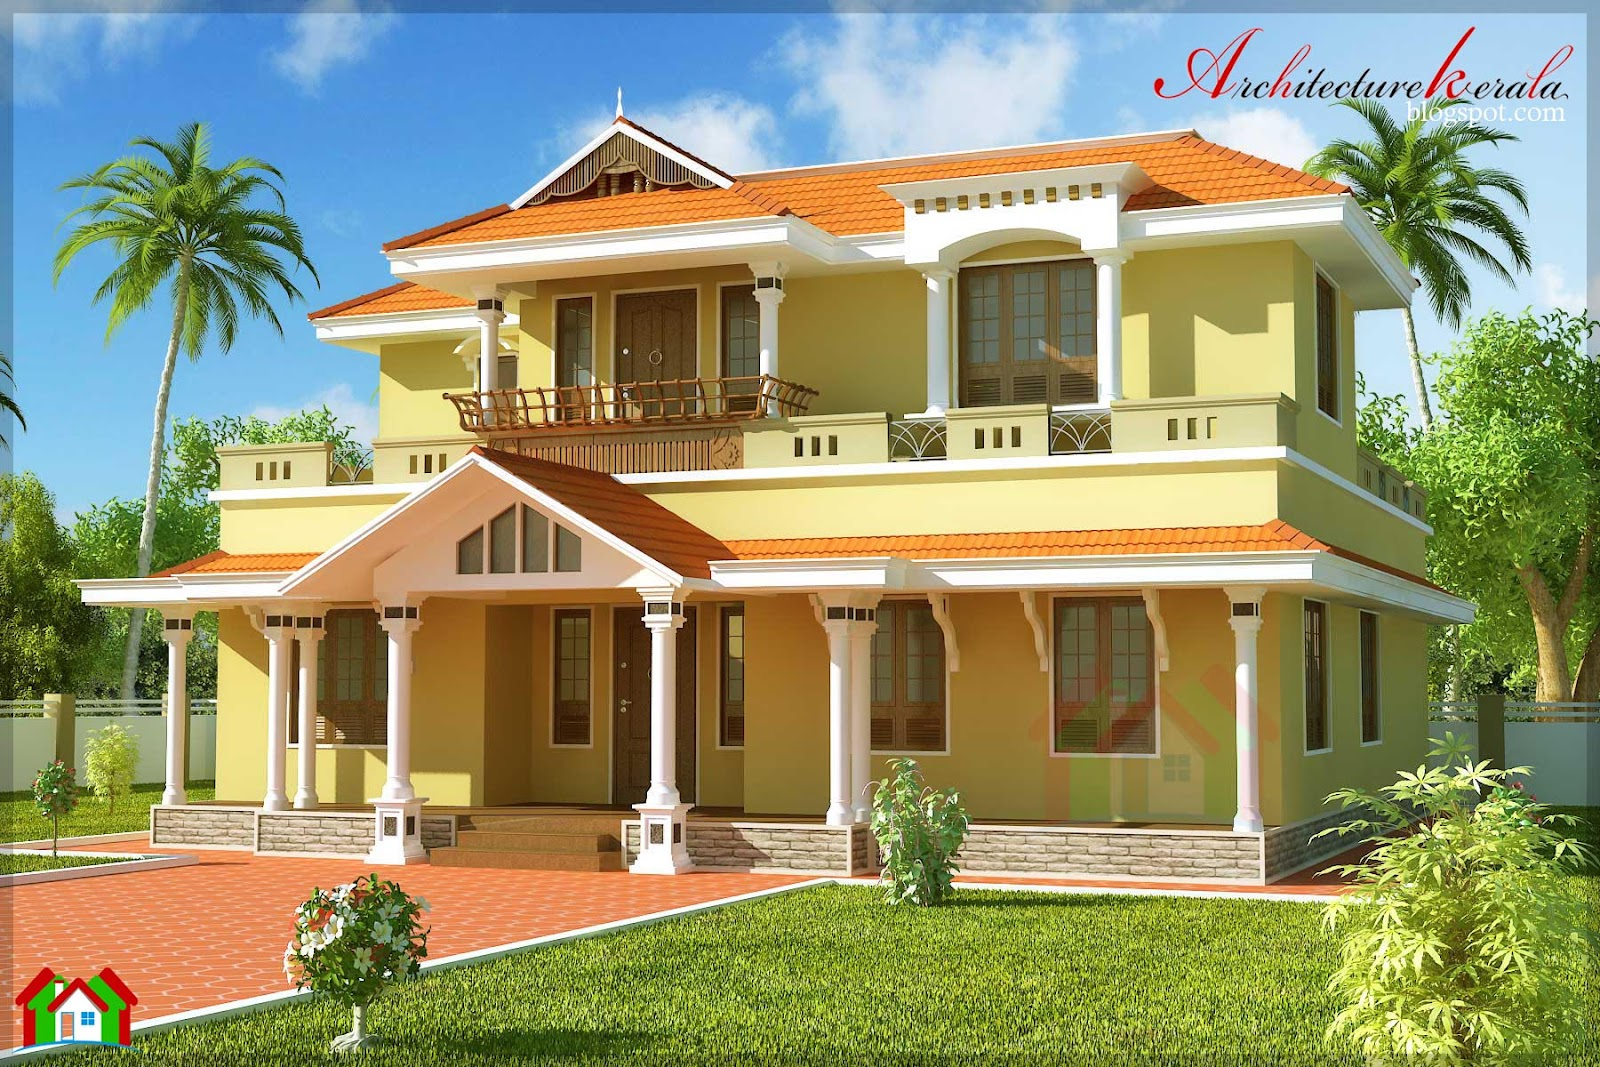 Architecture kerala 2500 square feet traditional style for Traditional house plans in kerala